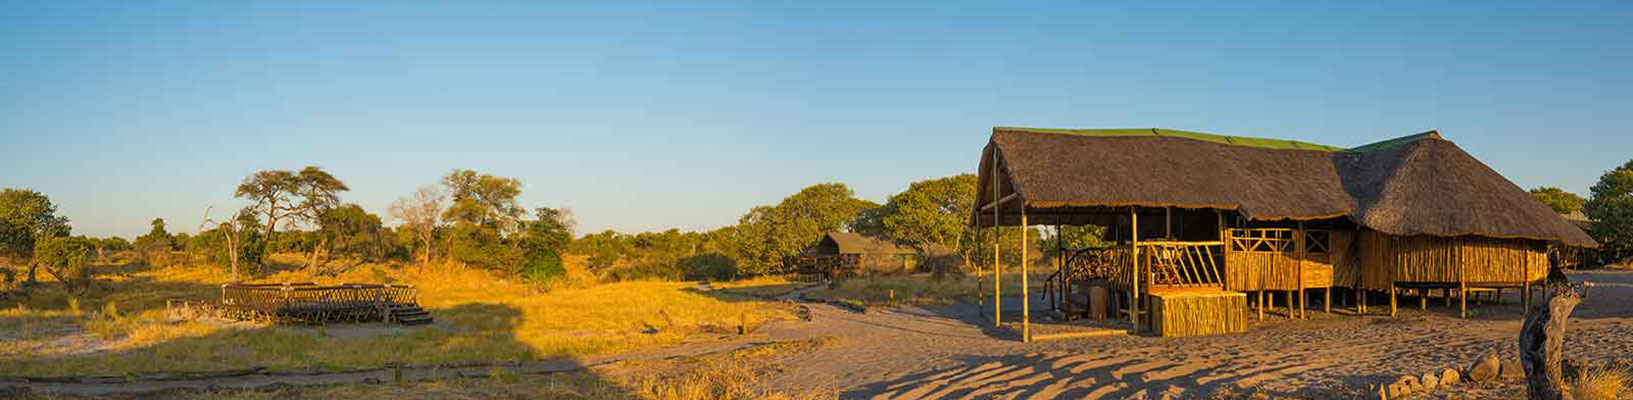 Camp-Savuti-lodge-entrance-pano.jpg